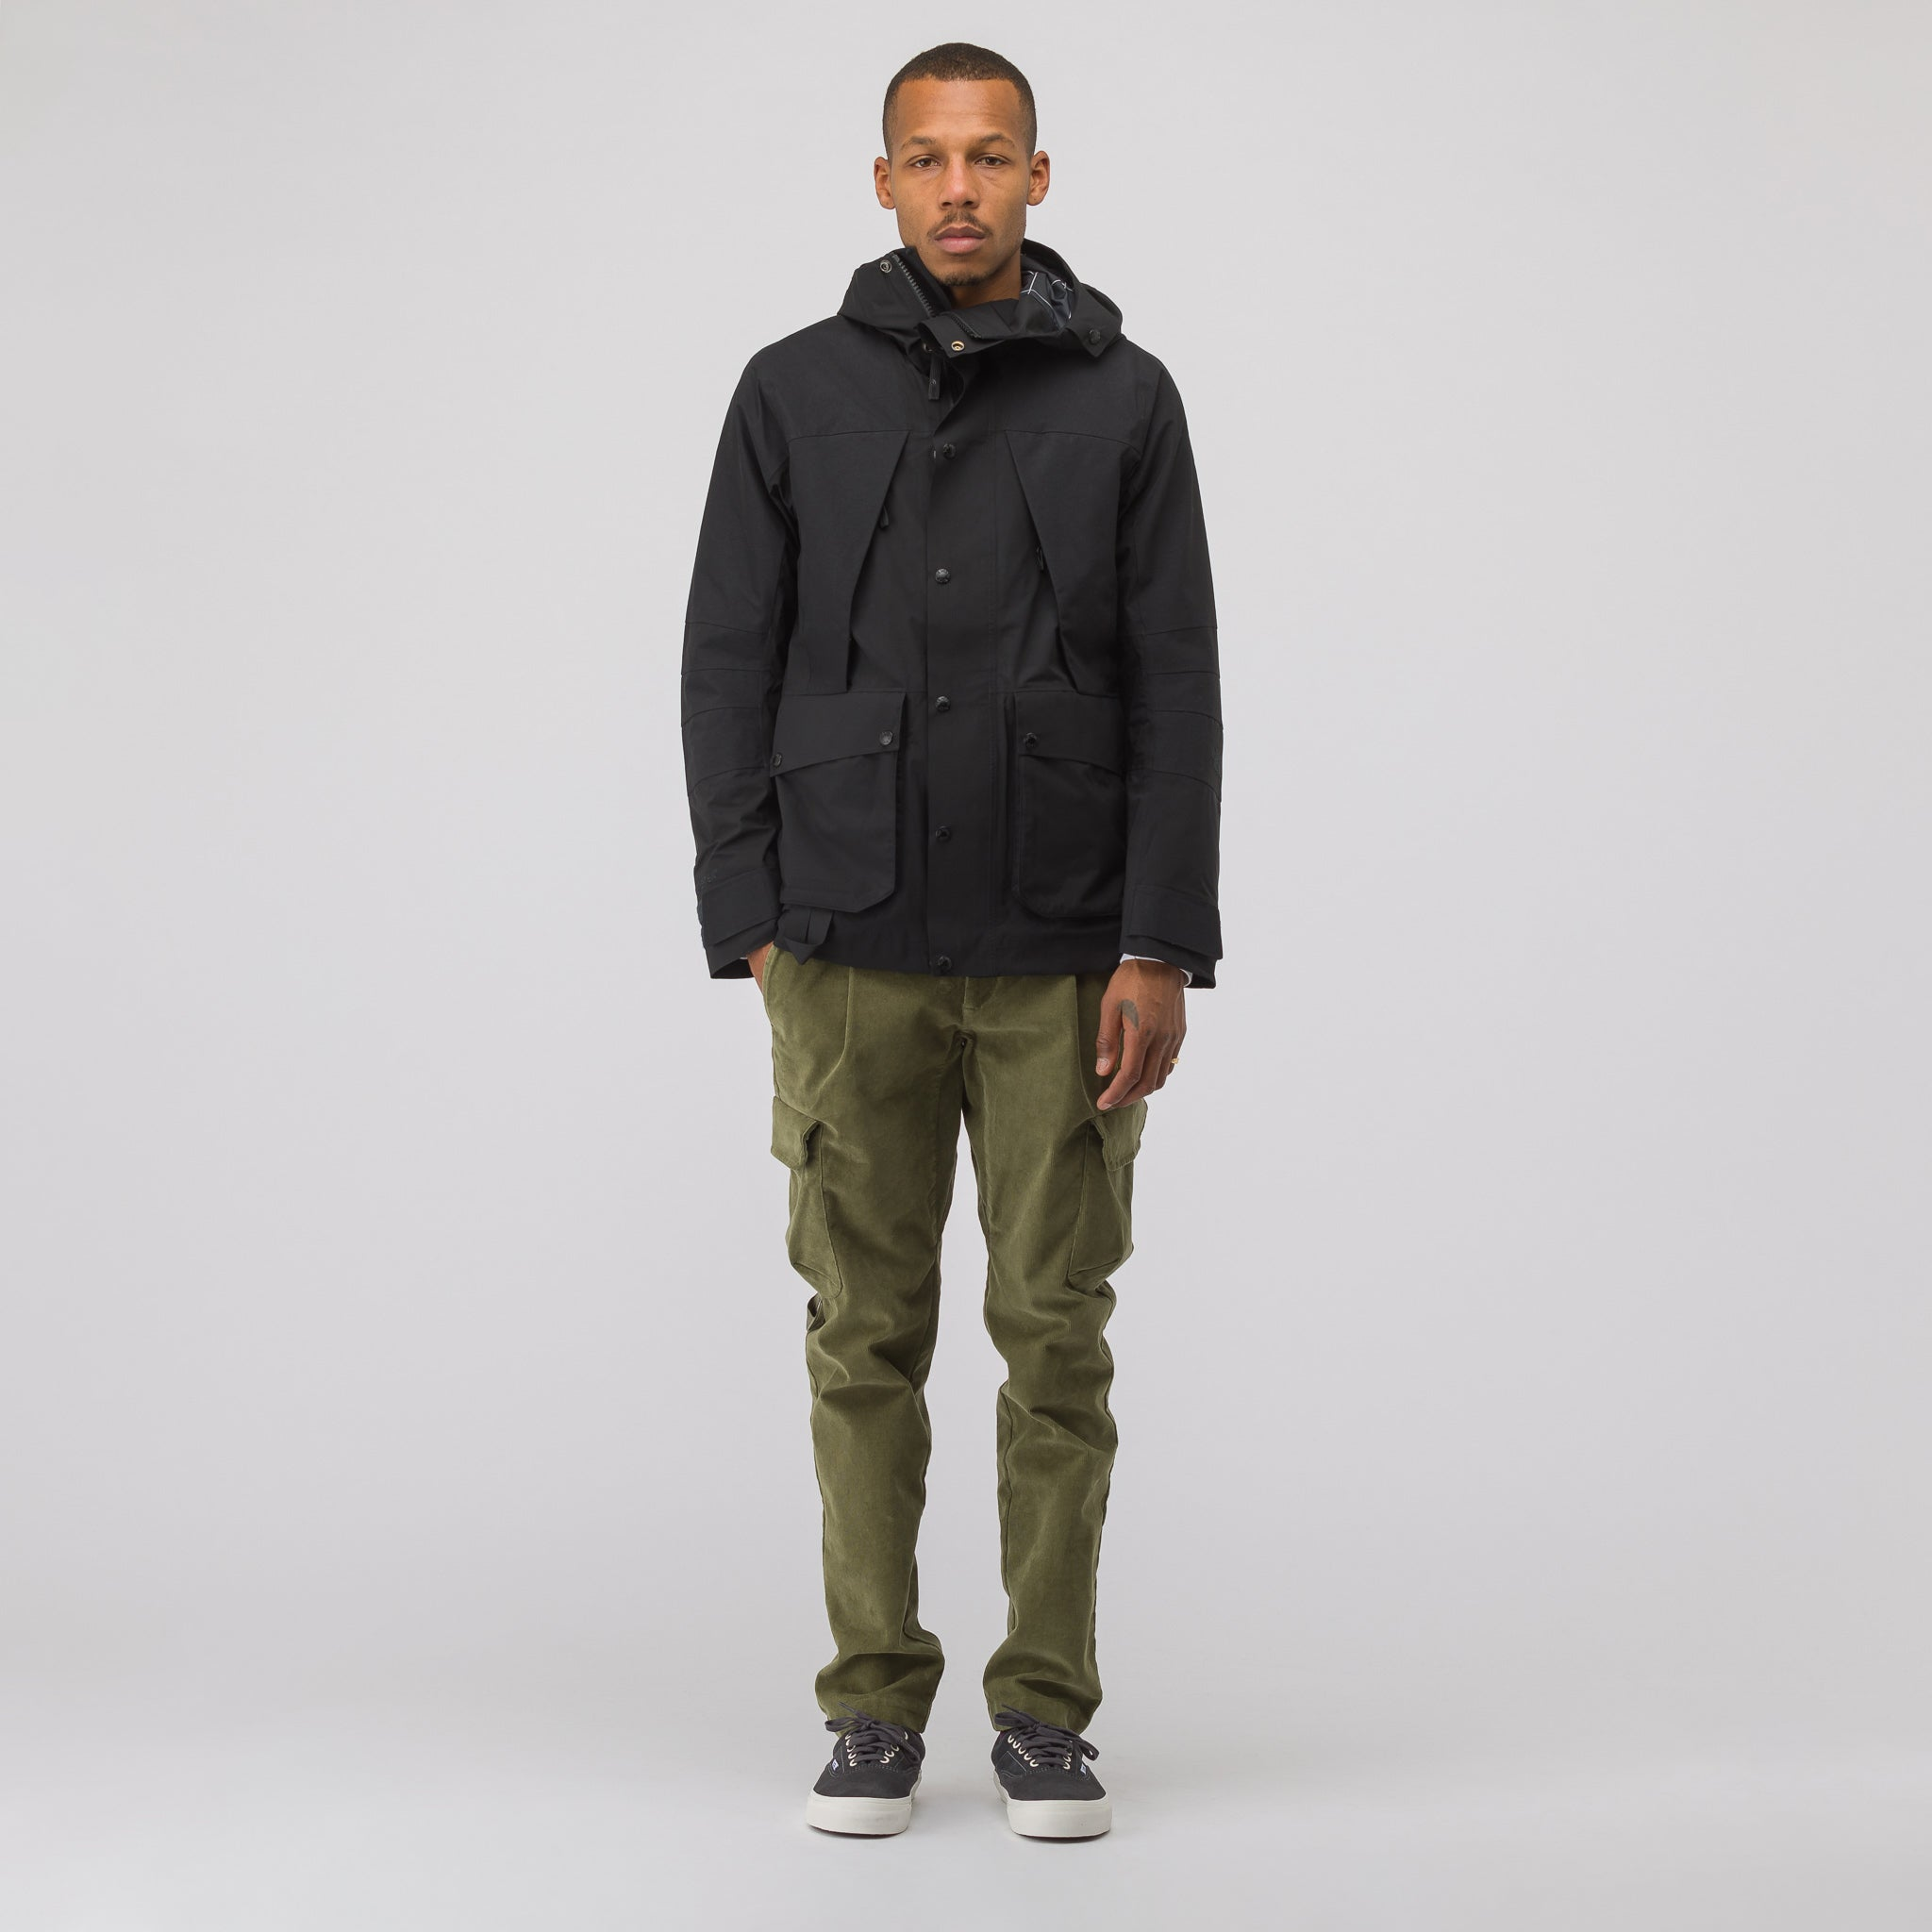 GORE-TEX Mountain Light Jacket in Black